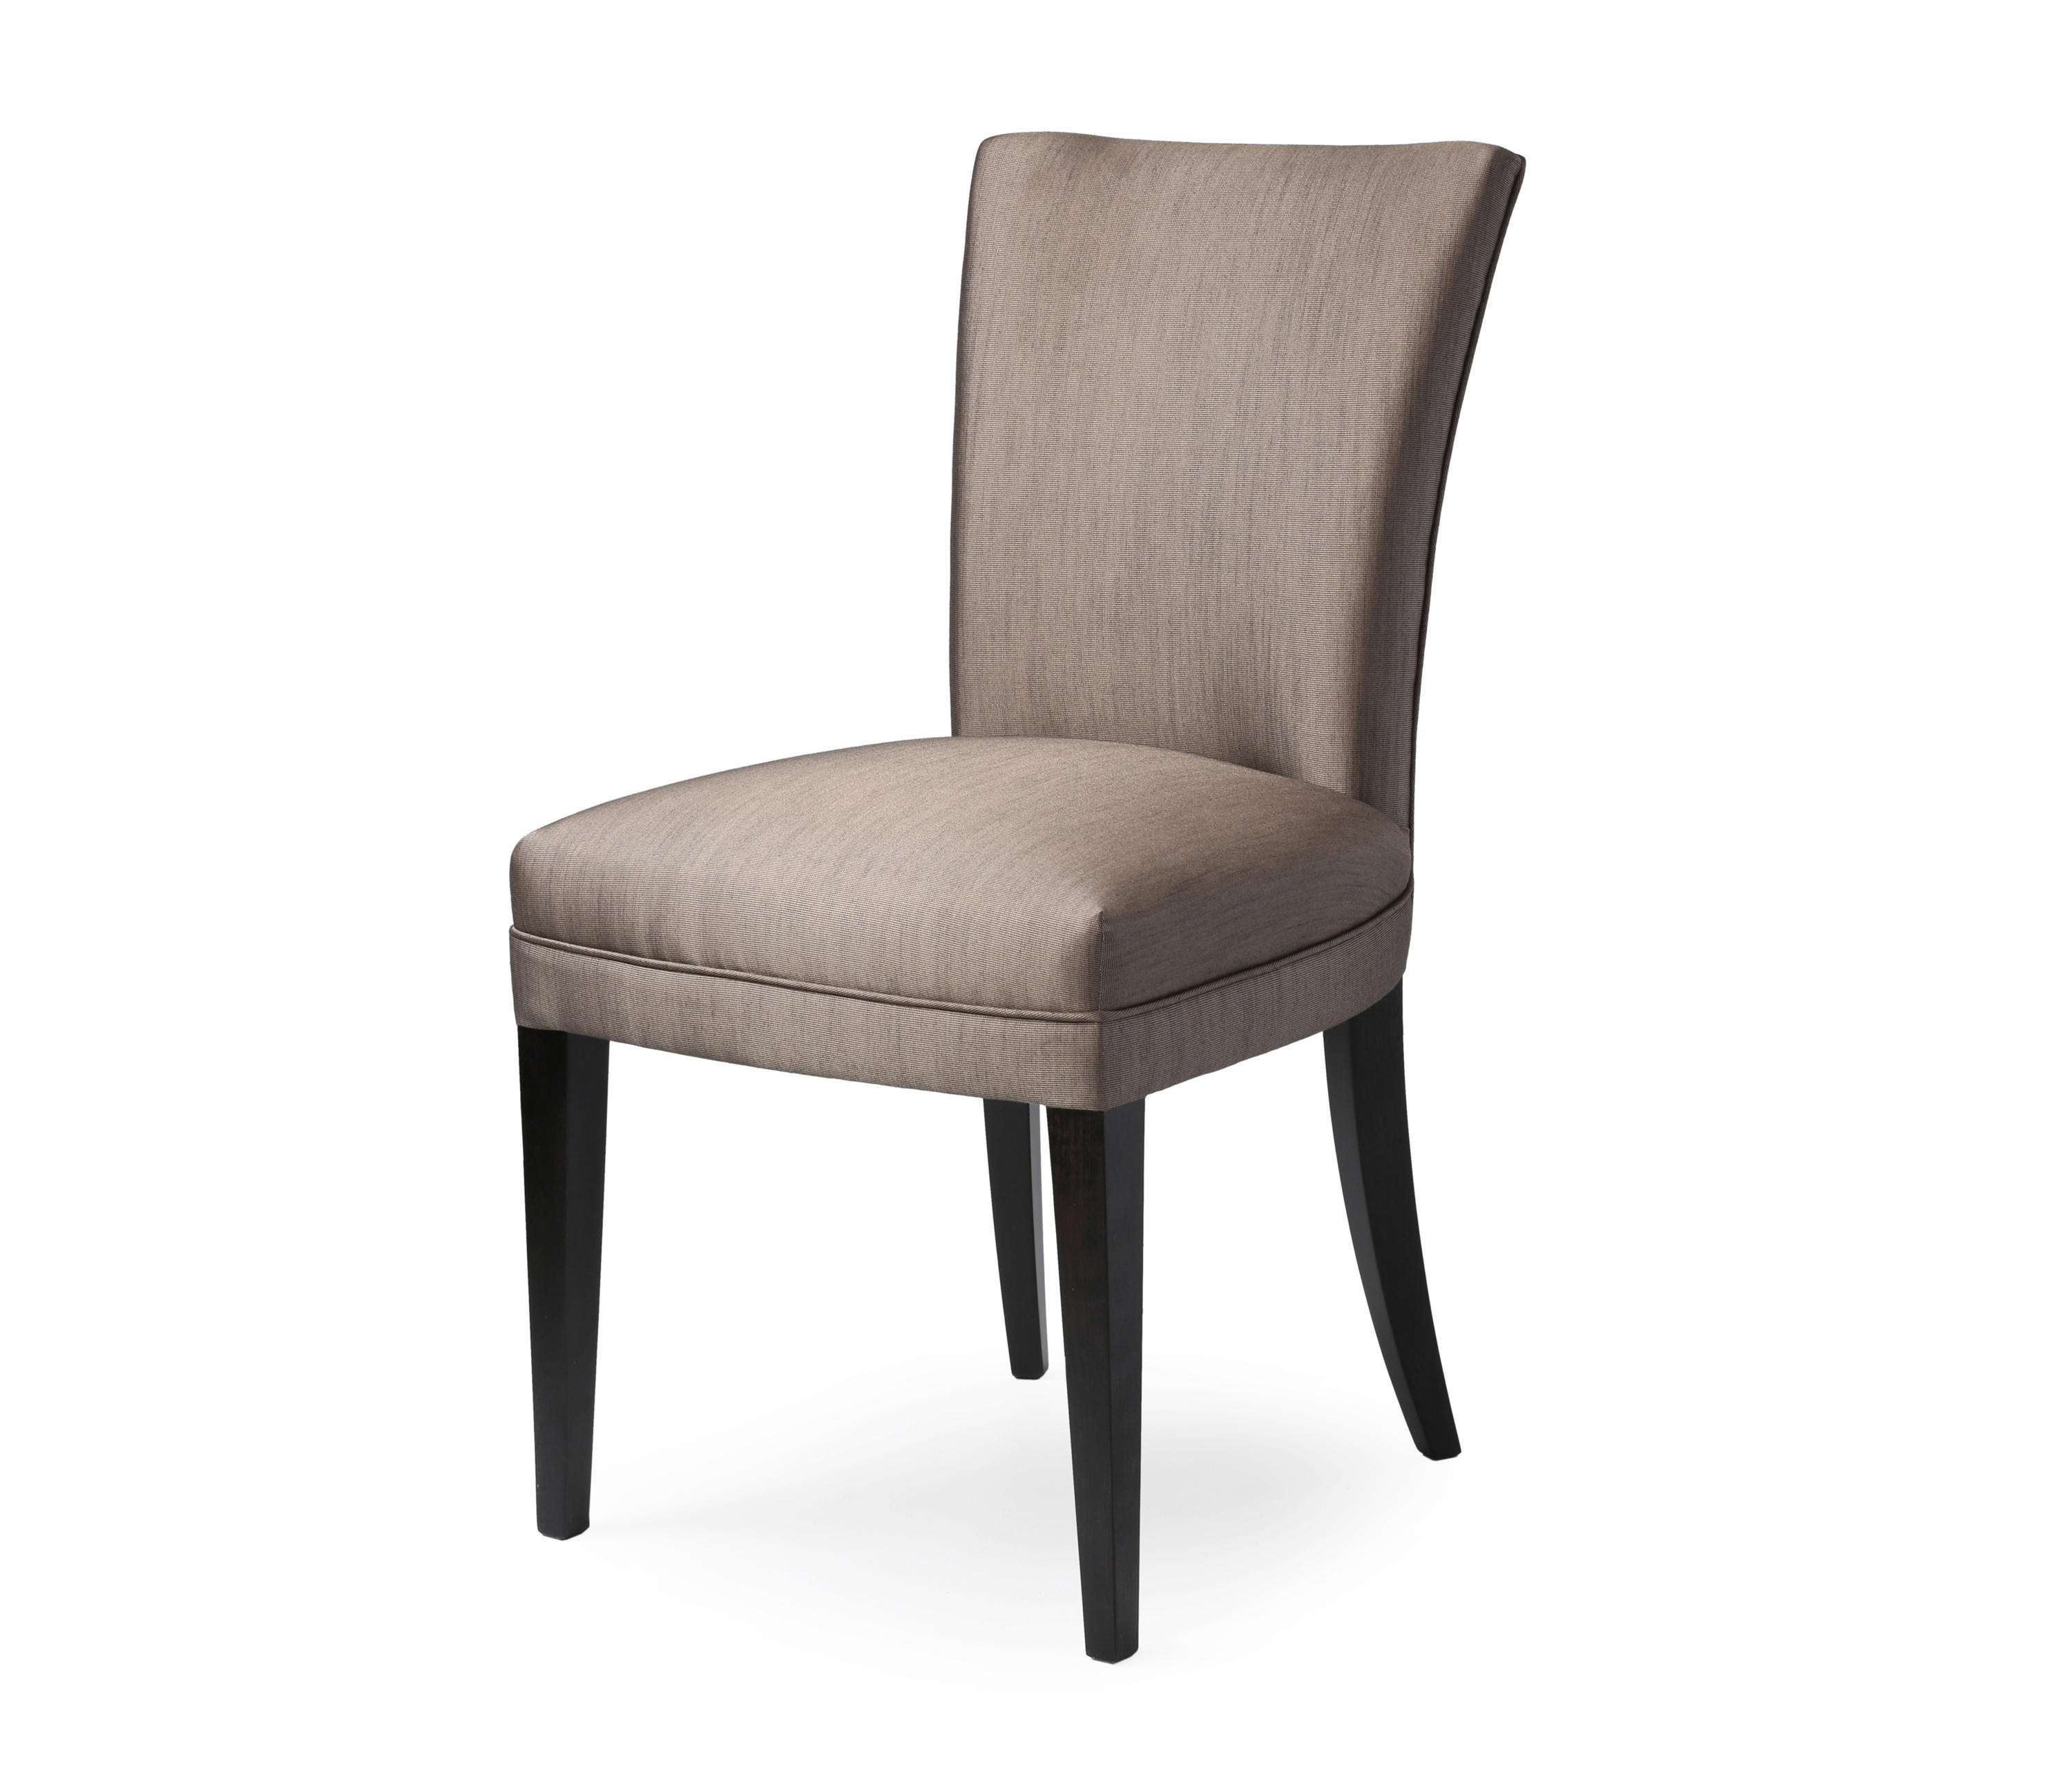 Elegant Paris Dining Chair By The Sofa U0026 Chair Company Ltd | Restaurant Chairs ...